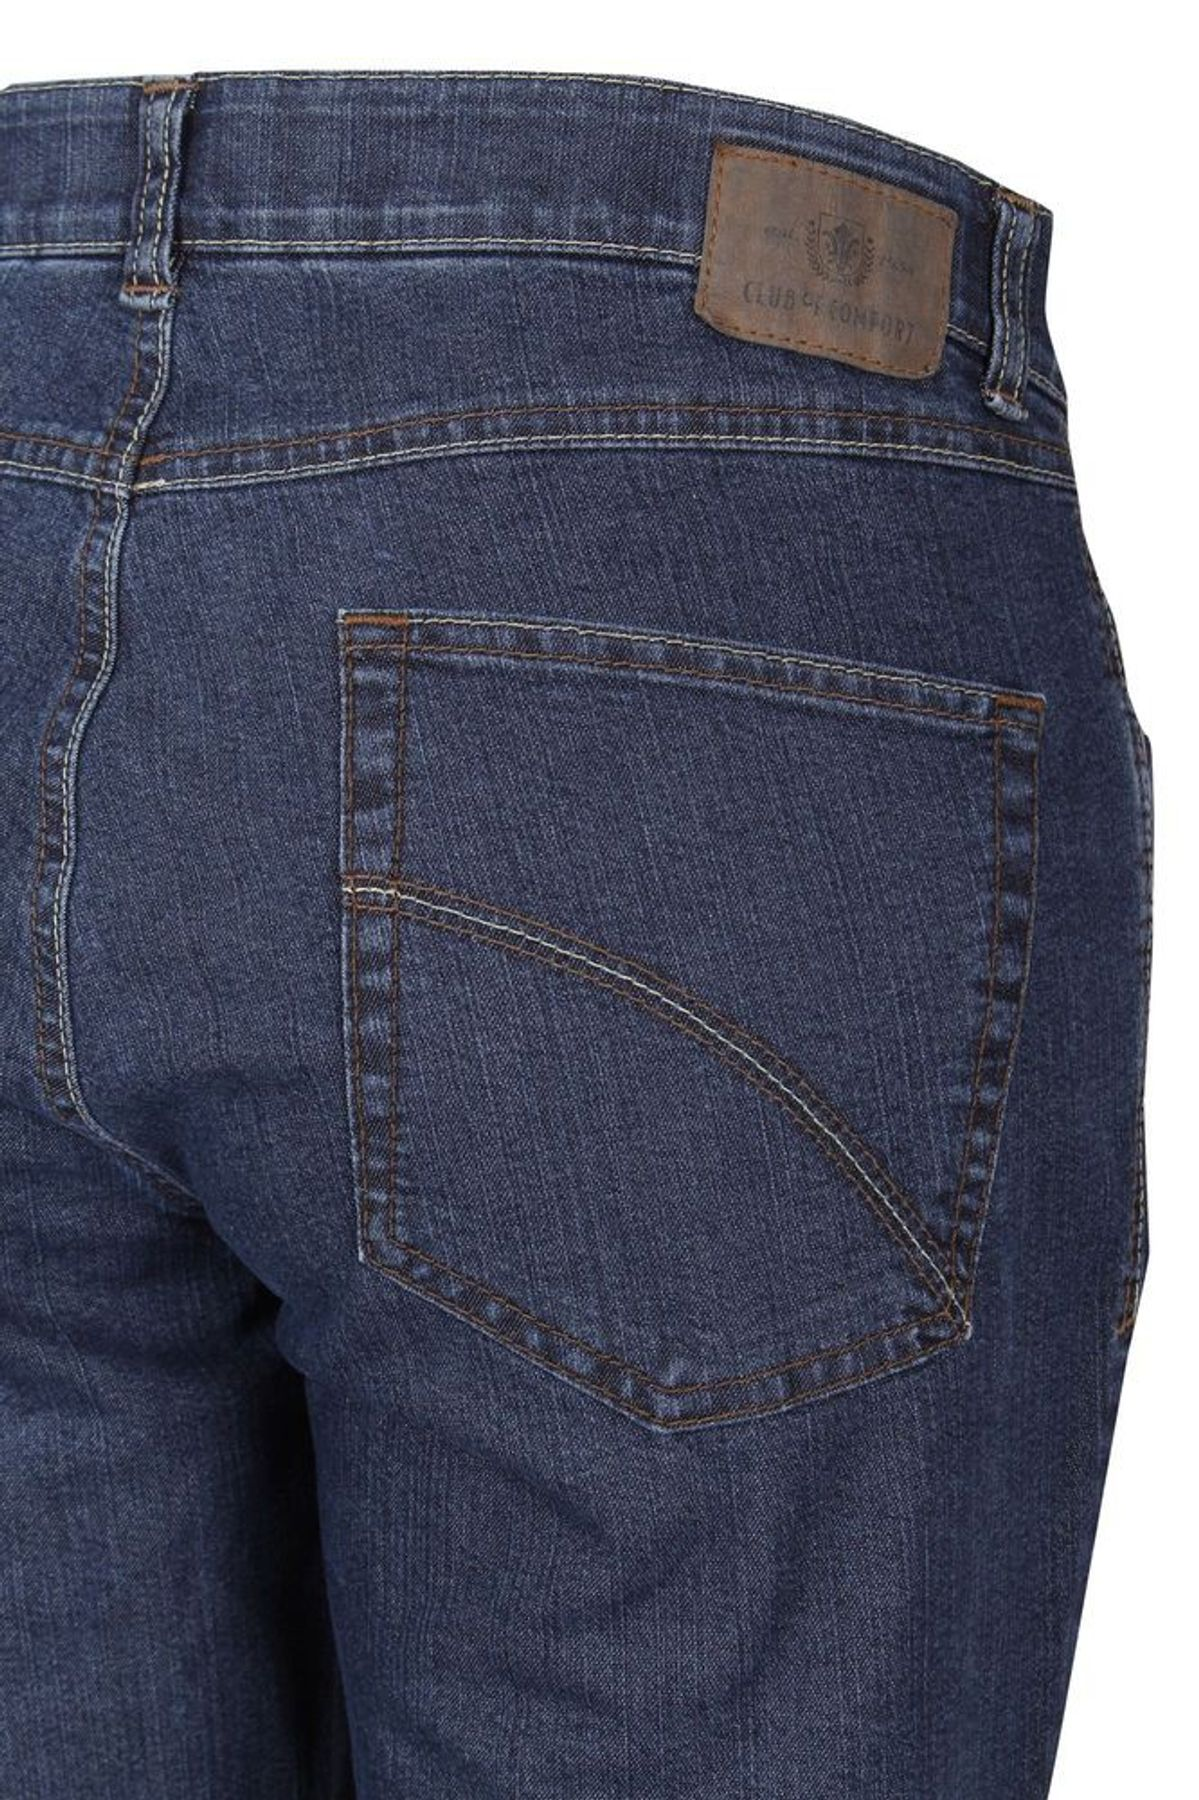 Club of Comfort - Herren Five Pocket Jeans in verschiedenen Farben, James (4631) – Bild 4